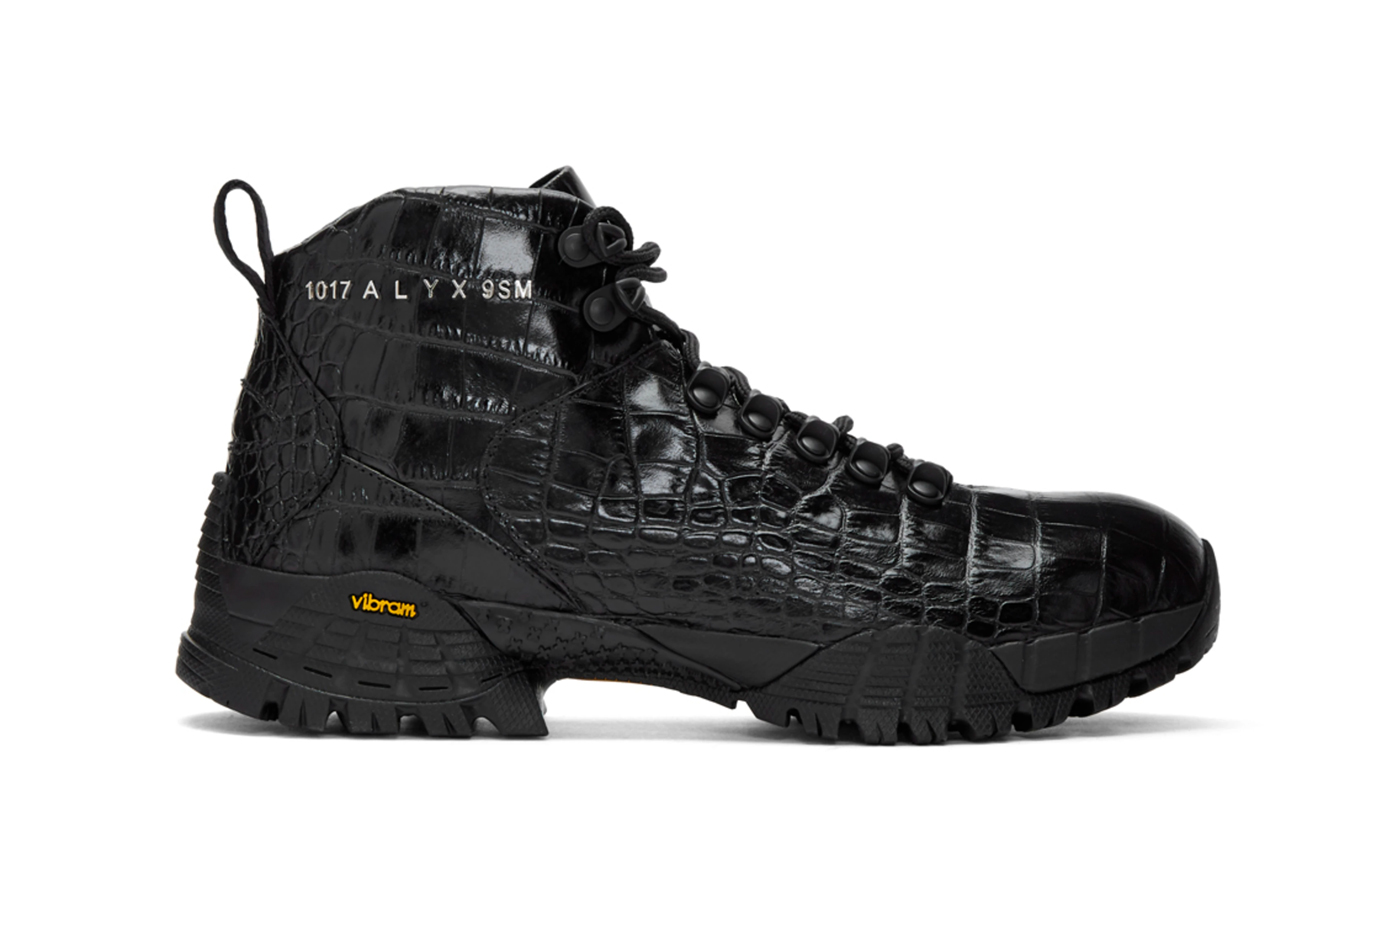 1017 ALYX 9SM Croc Hiking Boots Release Info Date Buy Price Black SSENSE Matthew M Williams